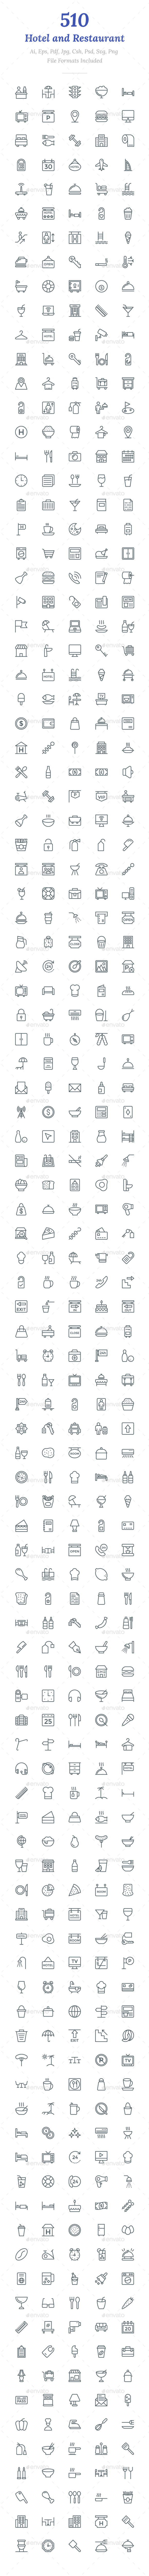 GraphicRiver 510 Hotel and Restaurant Line Icons 20702025